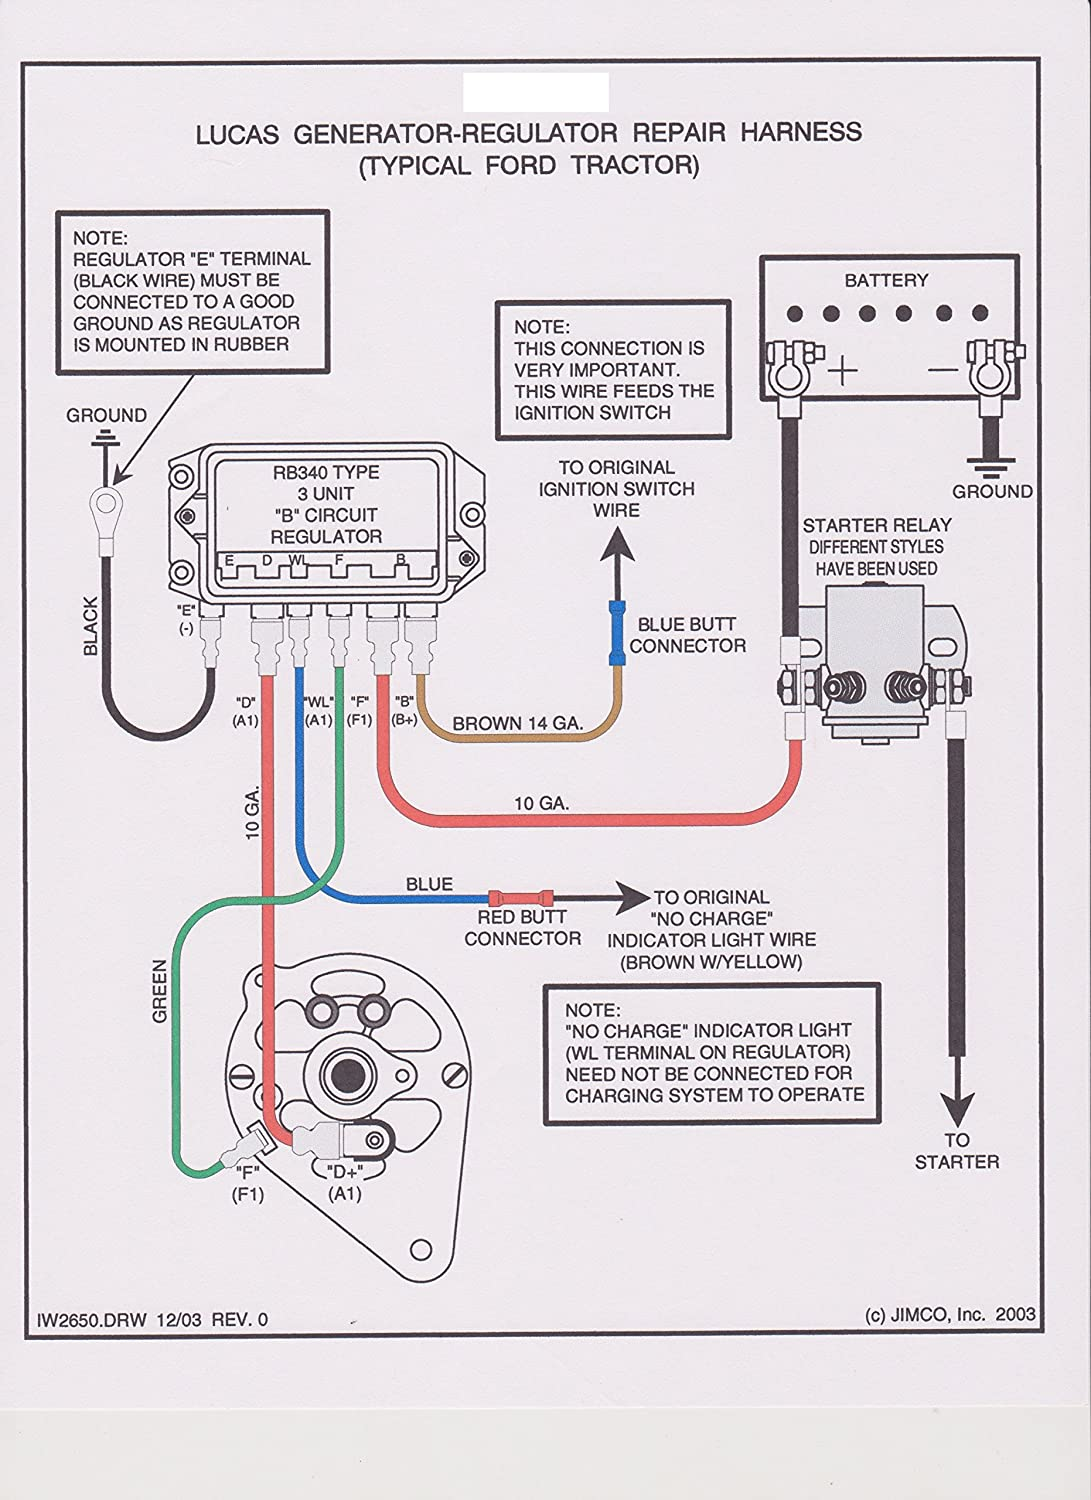 farmall 460 light wiring diagram wrg 7792  12 volt wiring diagram farmall cub  12 volt wiring diagram farmall cub